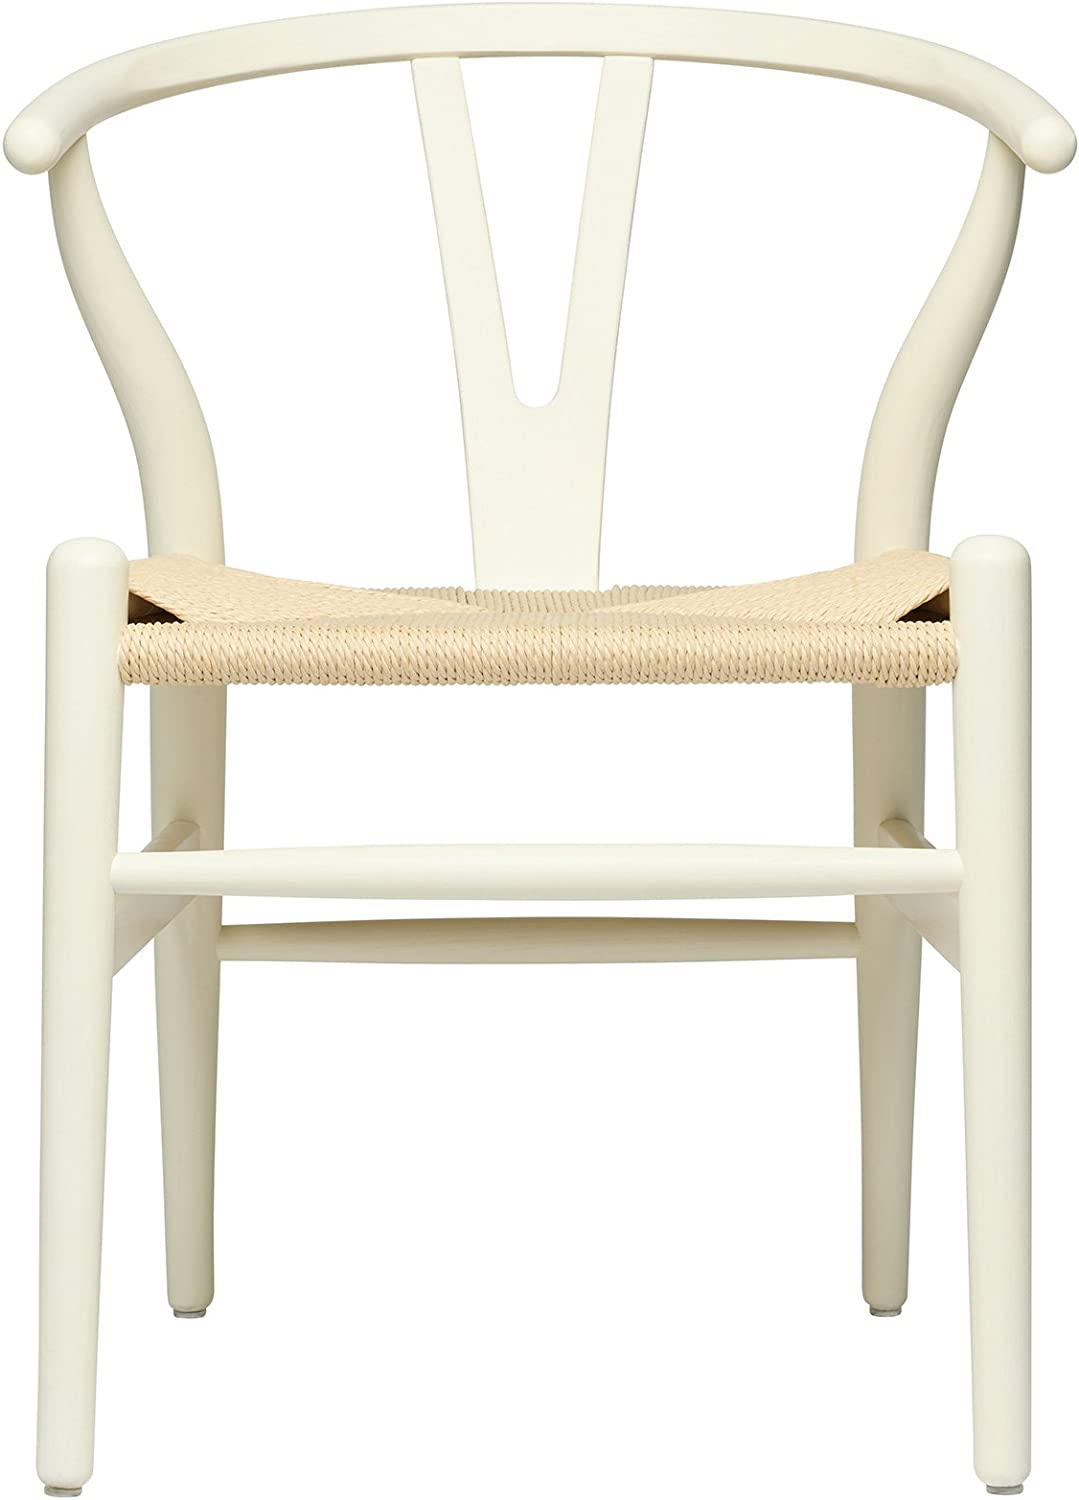 Hans Wegner Wishbone Style Woven Seat Chair (Rustic White with Natural Cord)